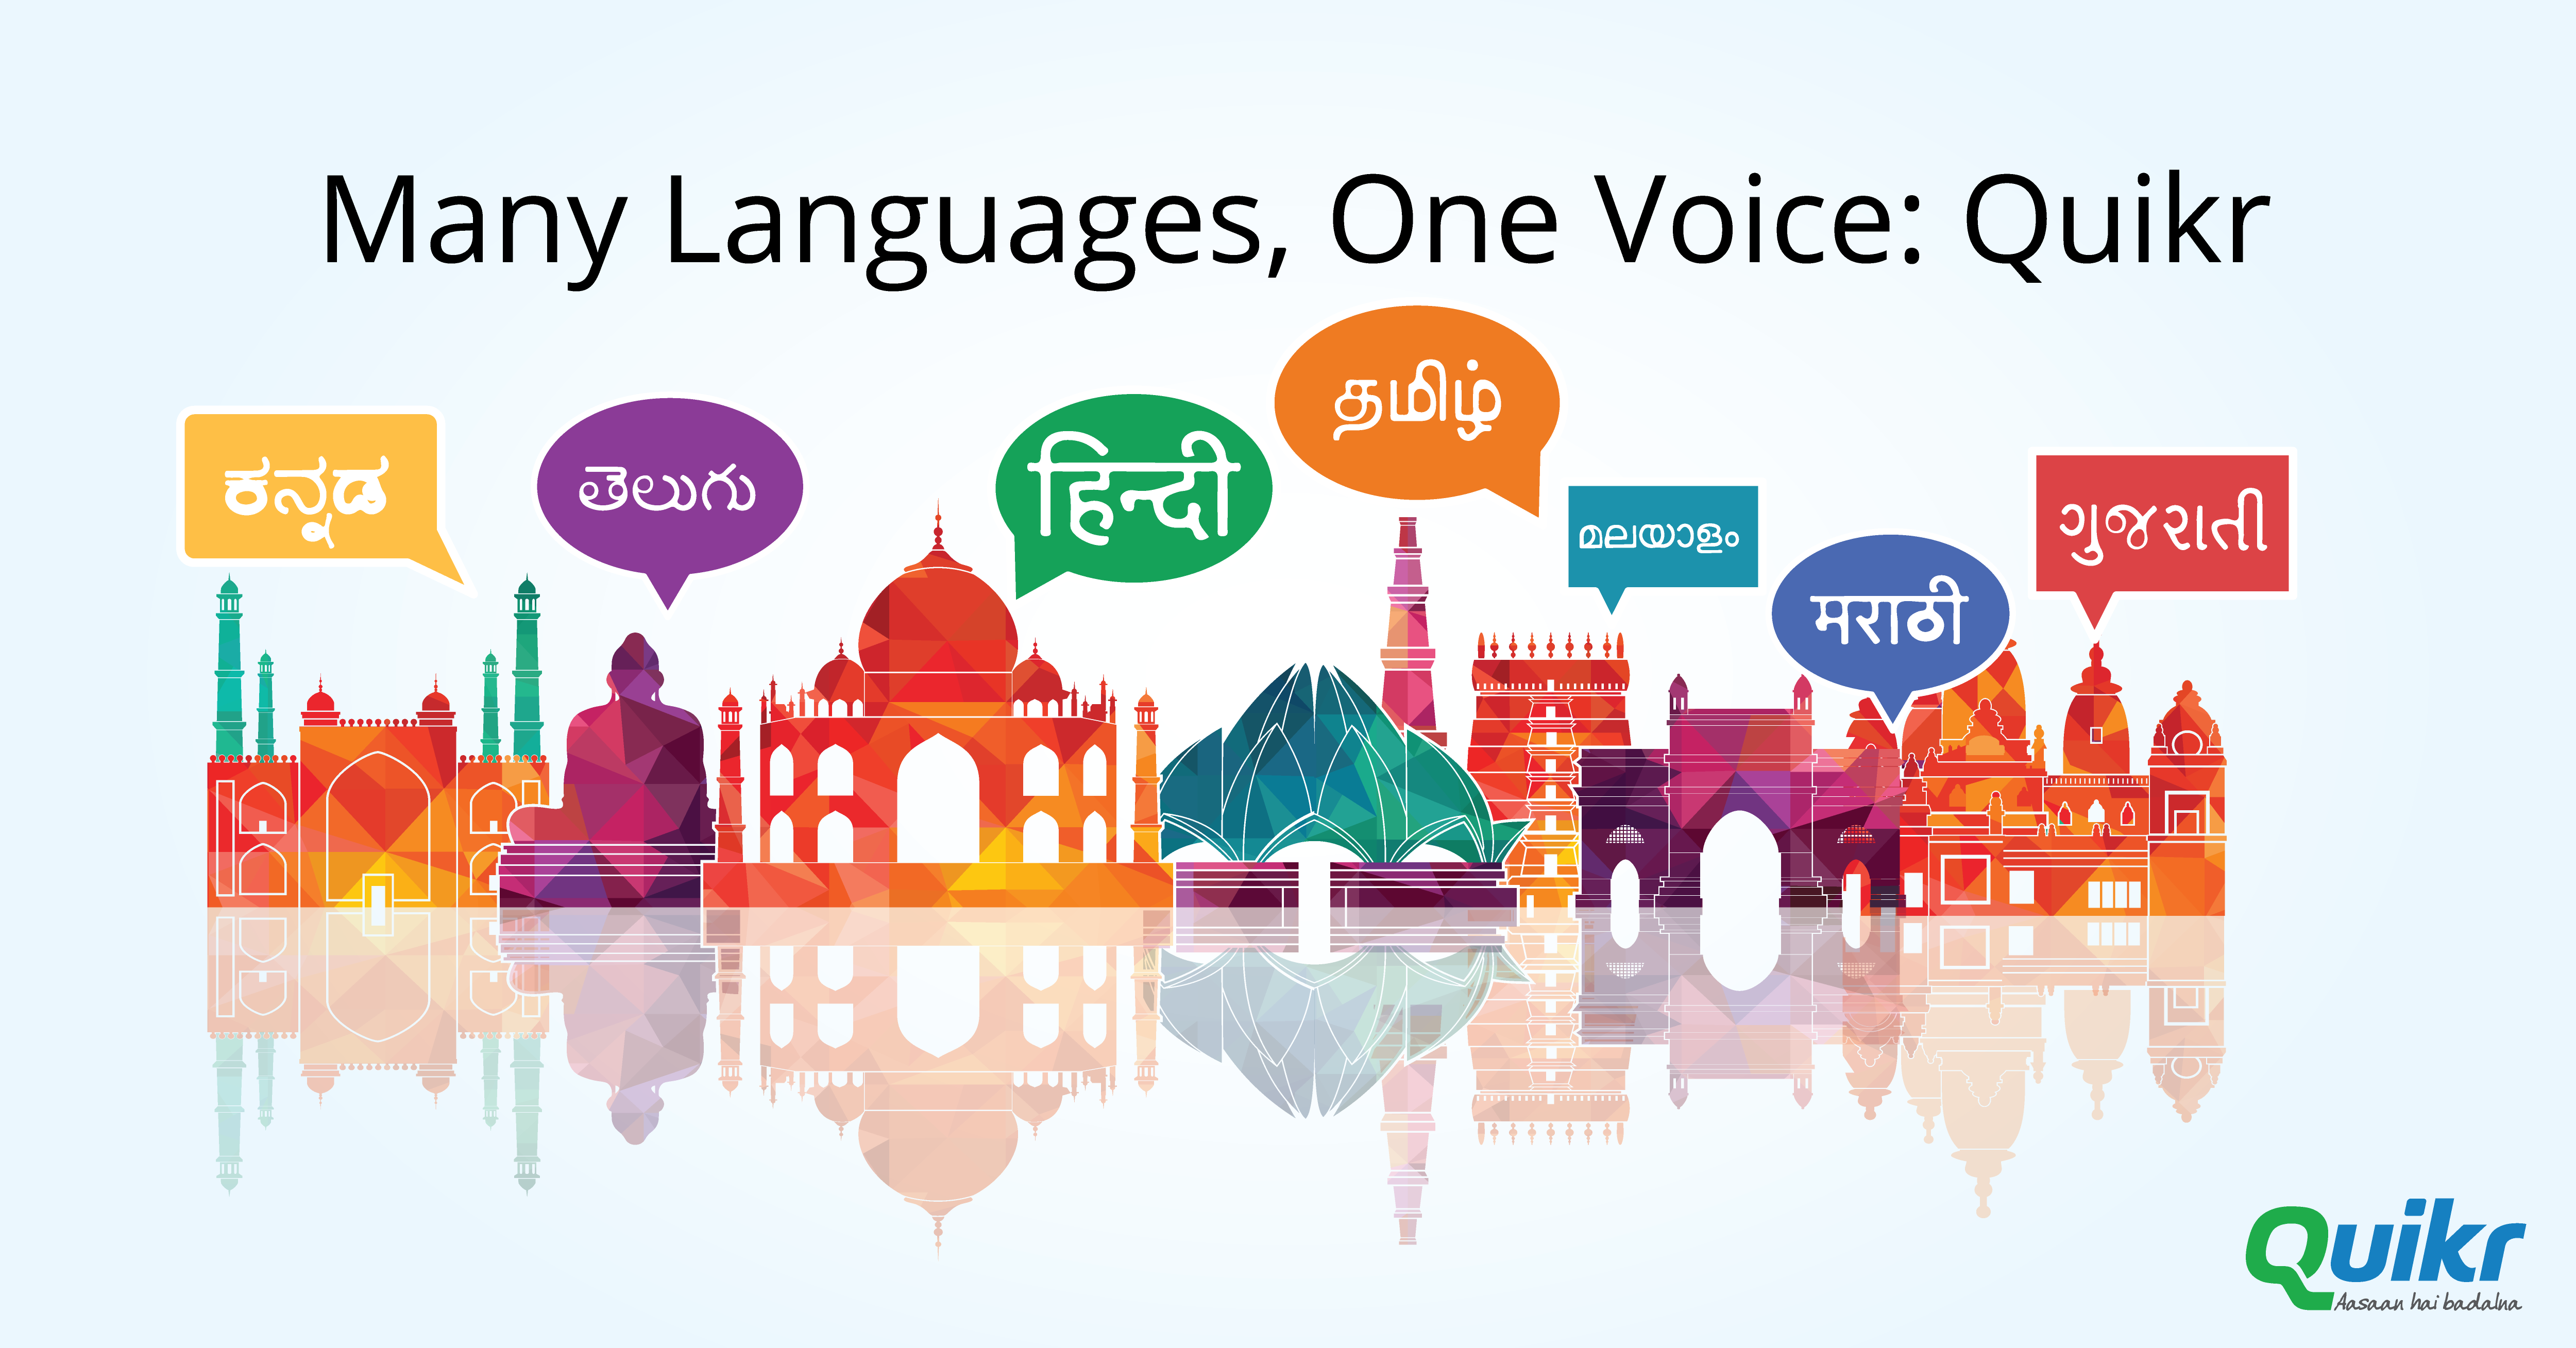 Quikr Goes Vernacular Breaks The Language Barrier Quikr News - No 1 language in world